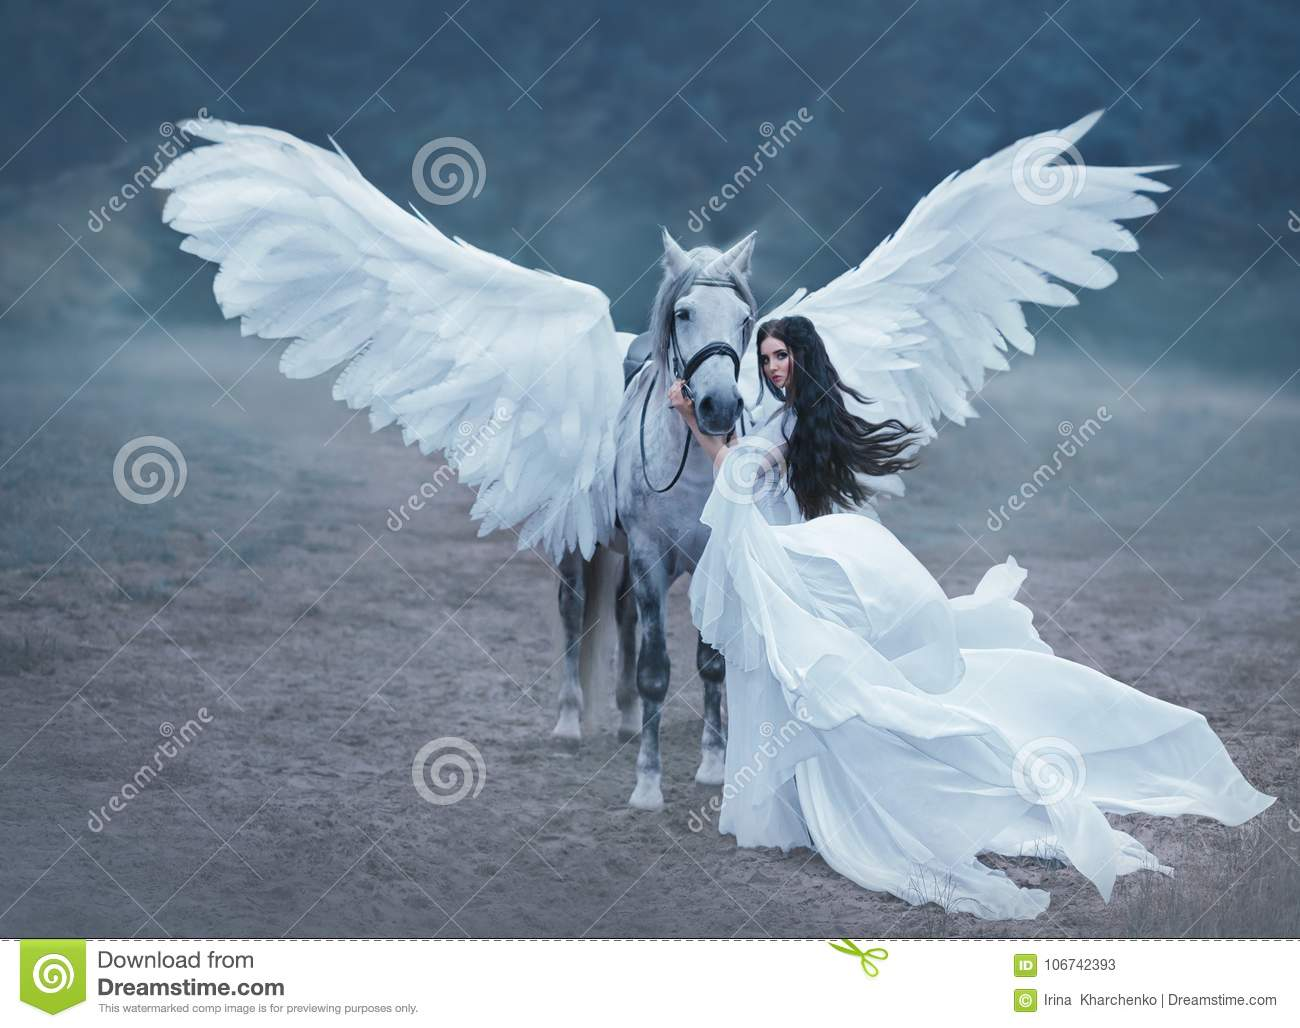 Beautiful, young elf, walking with a unicorn. She is wearing an incredible light, white dress. Art hotography